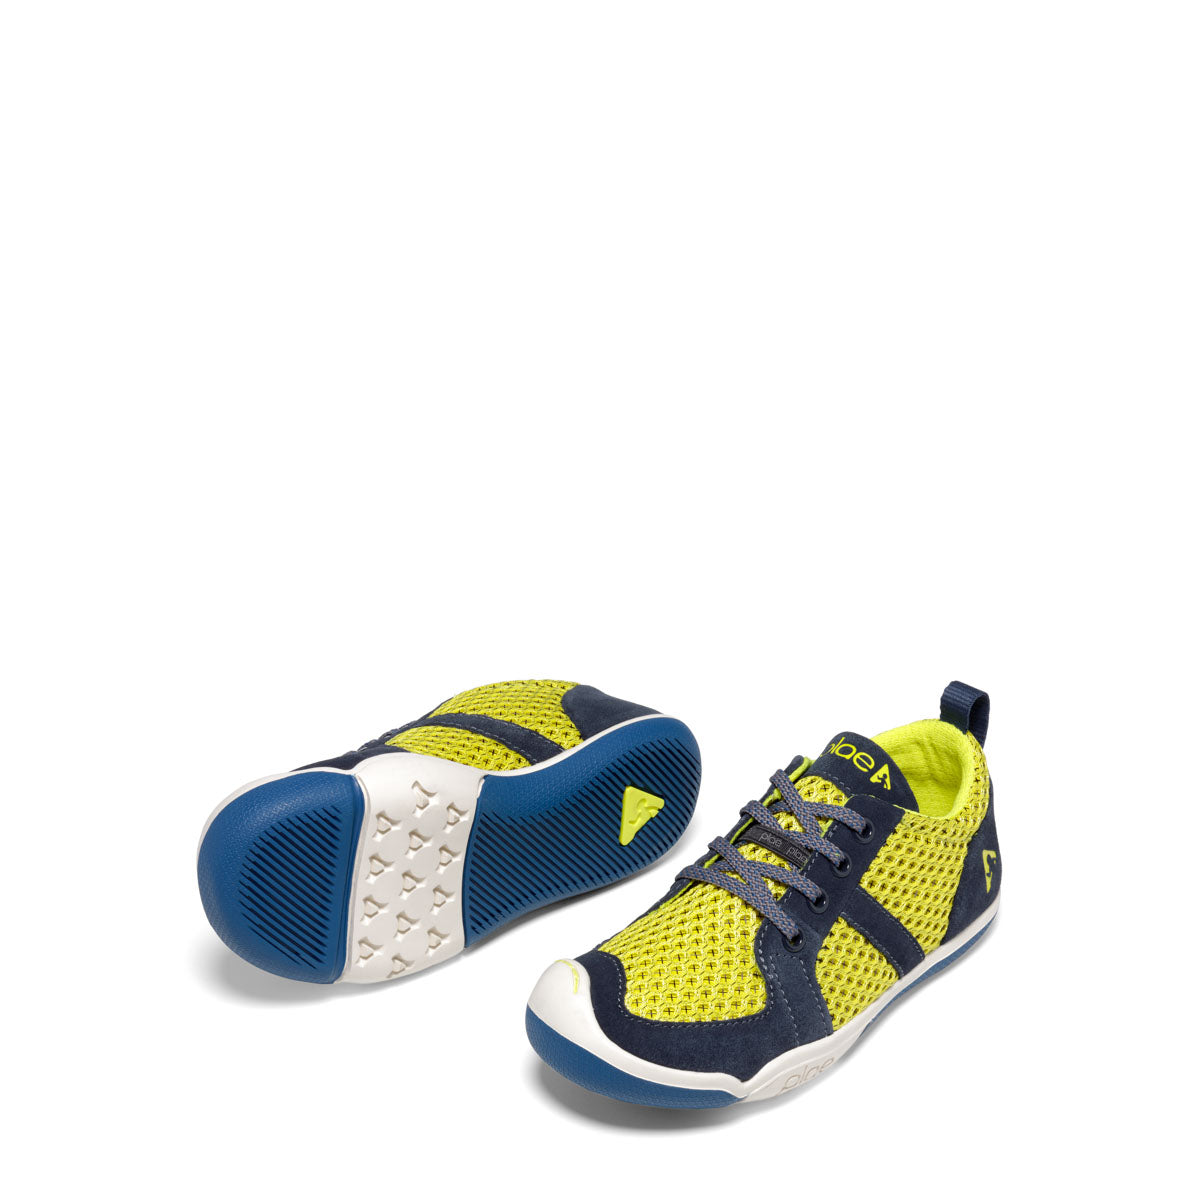 Plae Miles Lace in Flash Yellow/Blue (Sizes 12.5-4)